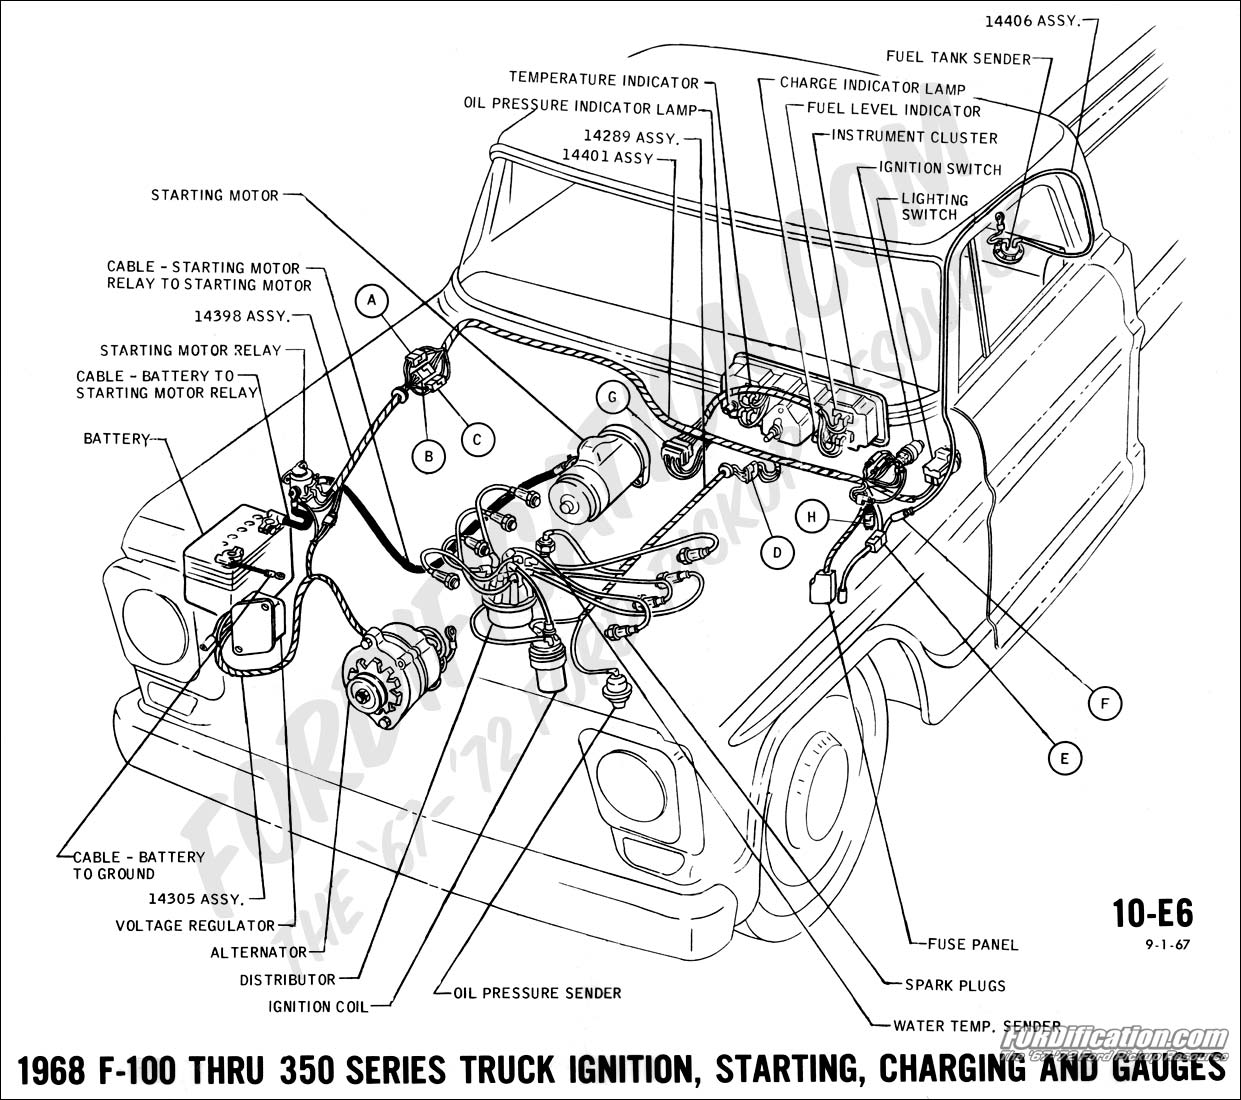 67 Ford Wiring Diagram Diagrams Box 1980 Chevy Truck Harness Technical Drawings And Schematics Section H Stereo 1968 F 100